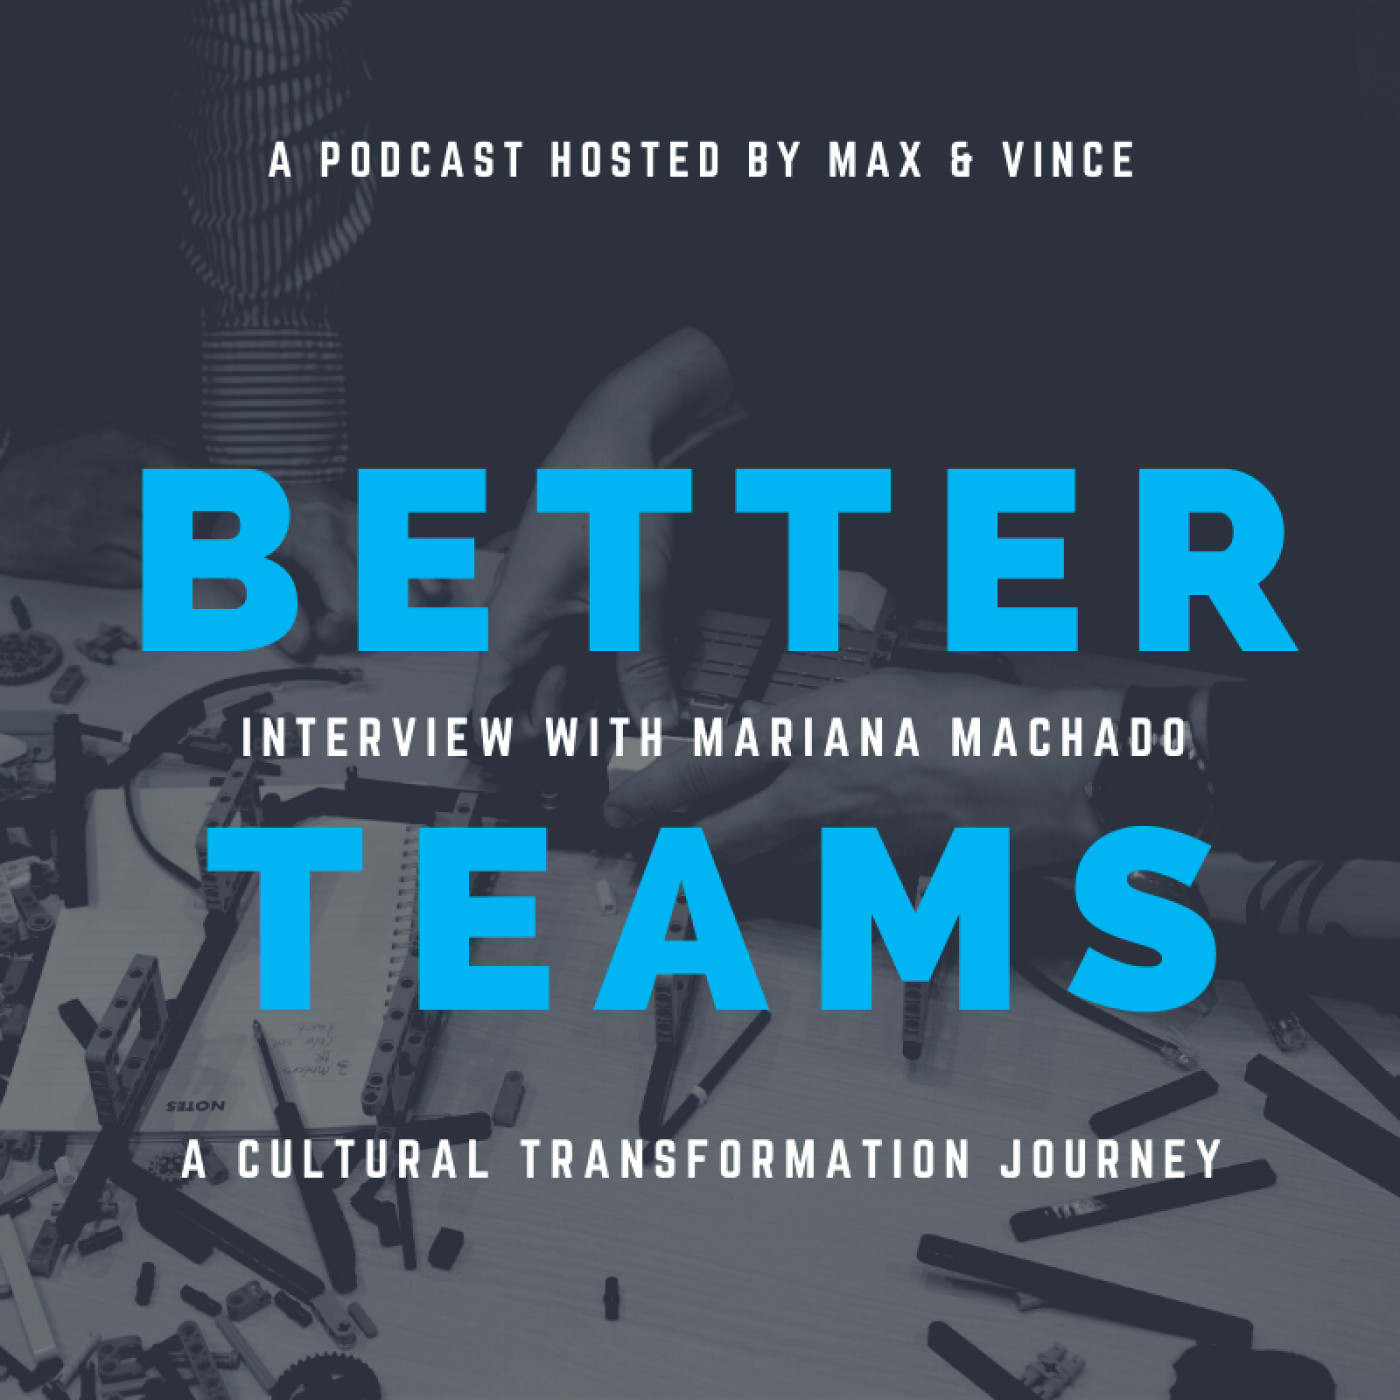 A Cultural Transformation Journey - Interview With Mariana Machado